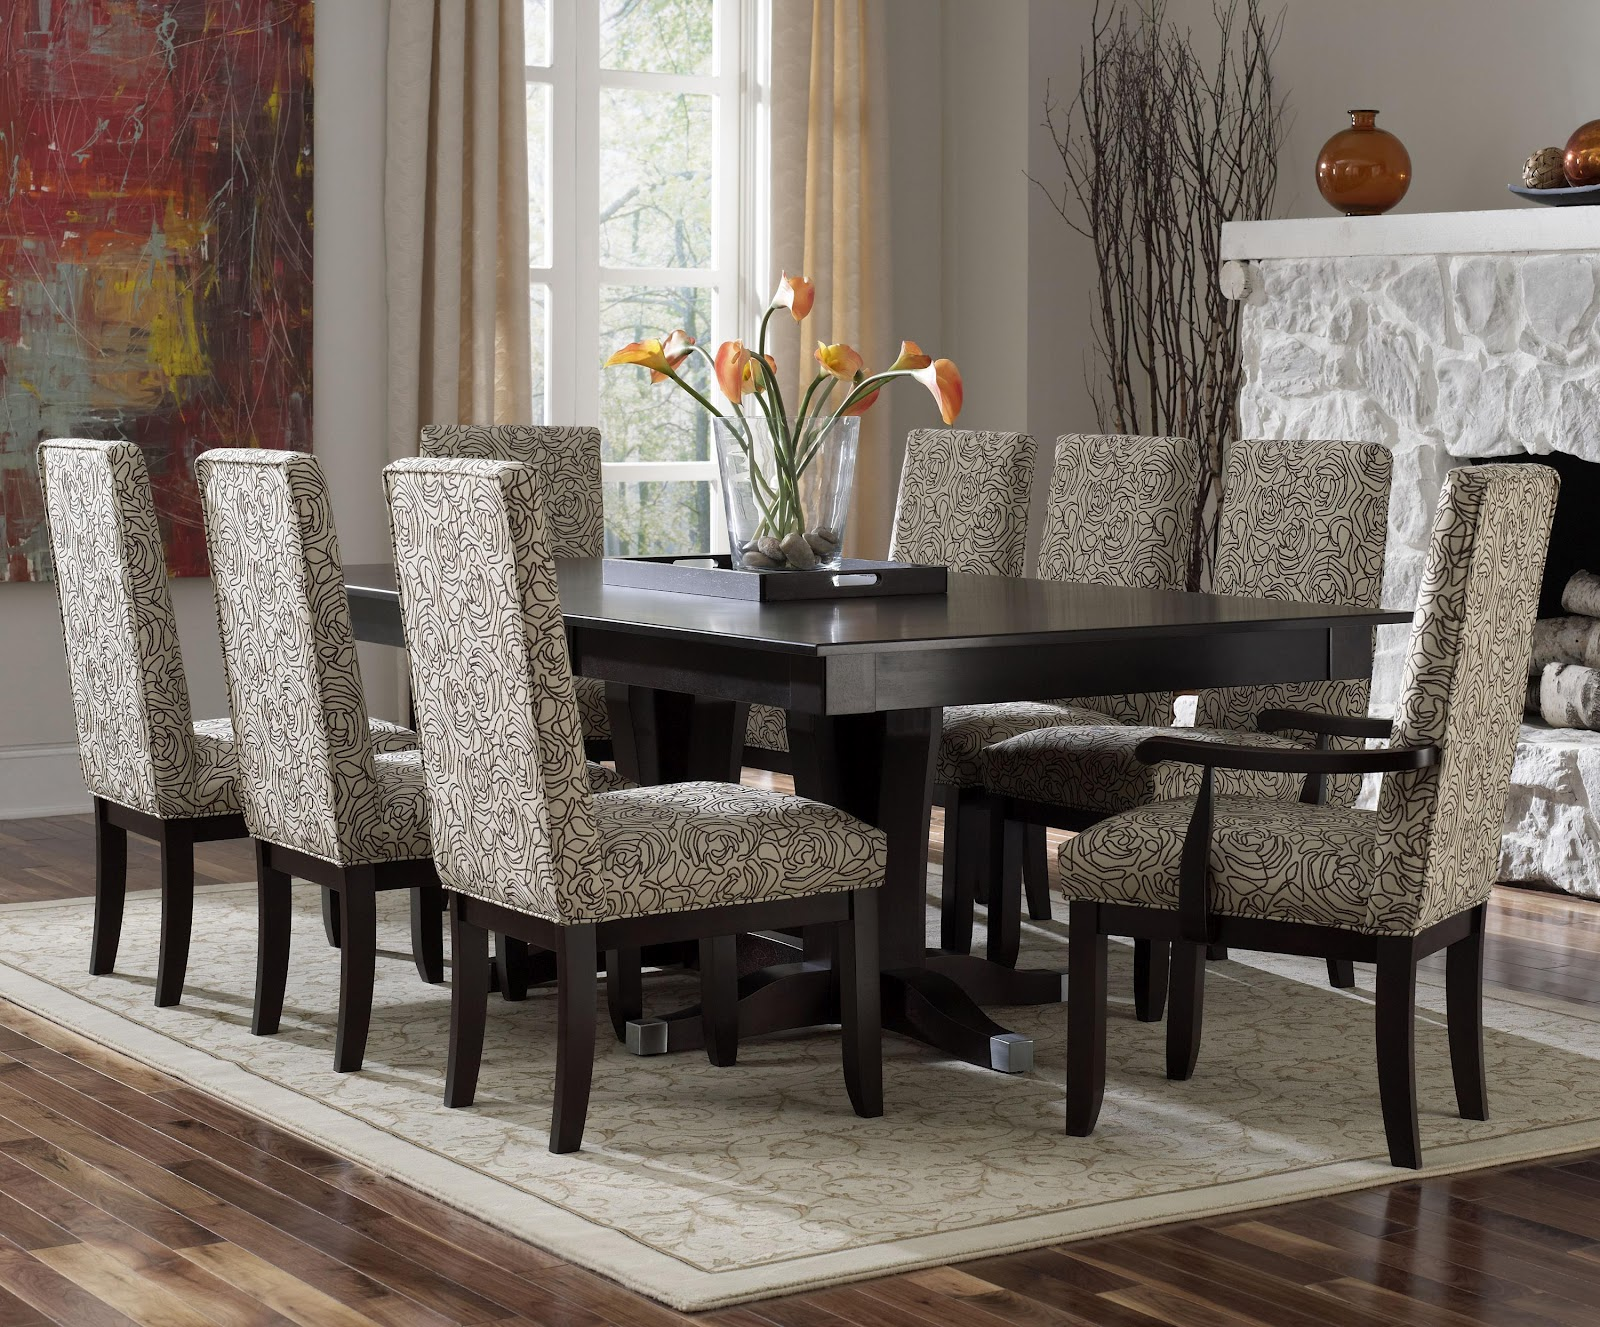 Canadel Furniture Long Island New York NY DINING ROOM UNIQUE DINETTE CANADE